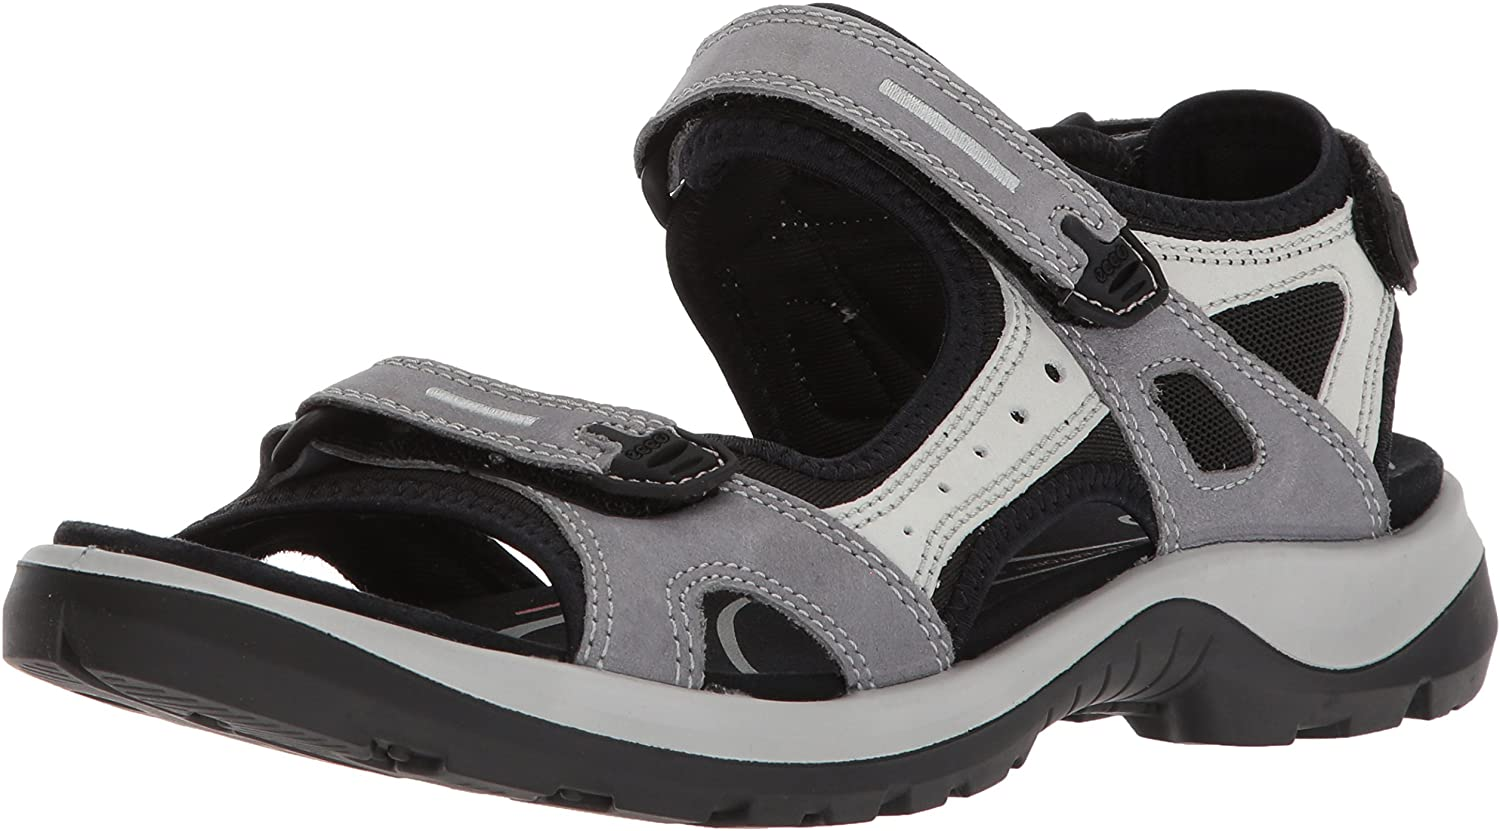 ECCO shoes Women's Offroad Yucatan Athletic Sandals, Titanium, 39 EU  8-8.5 M US